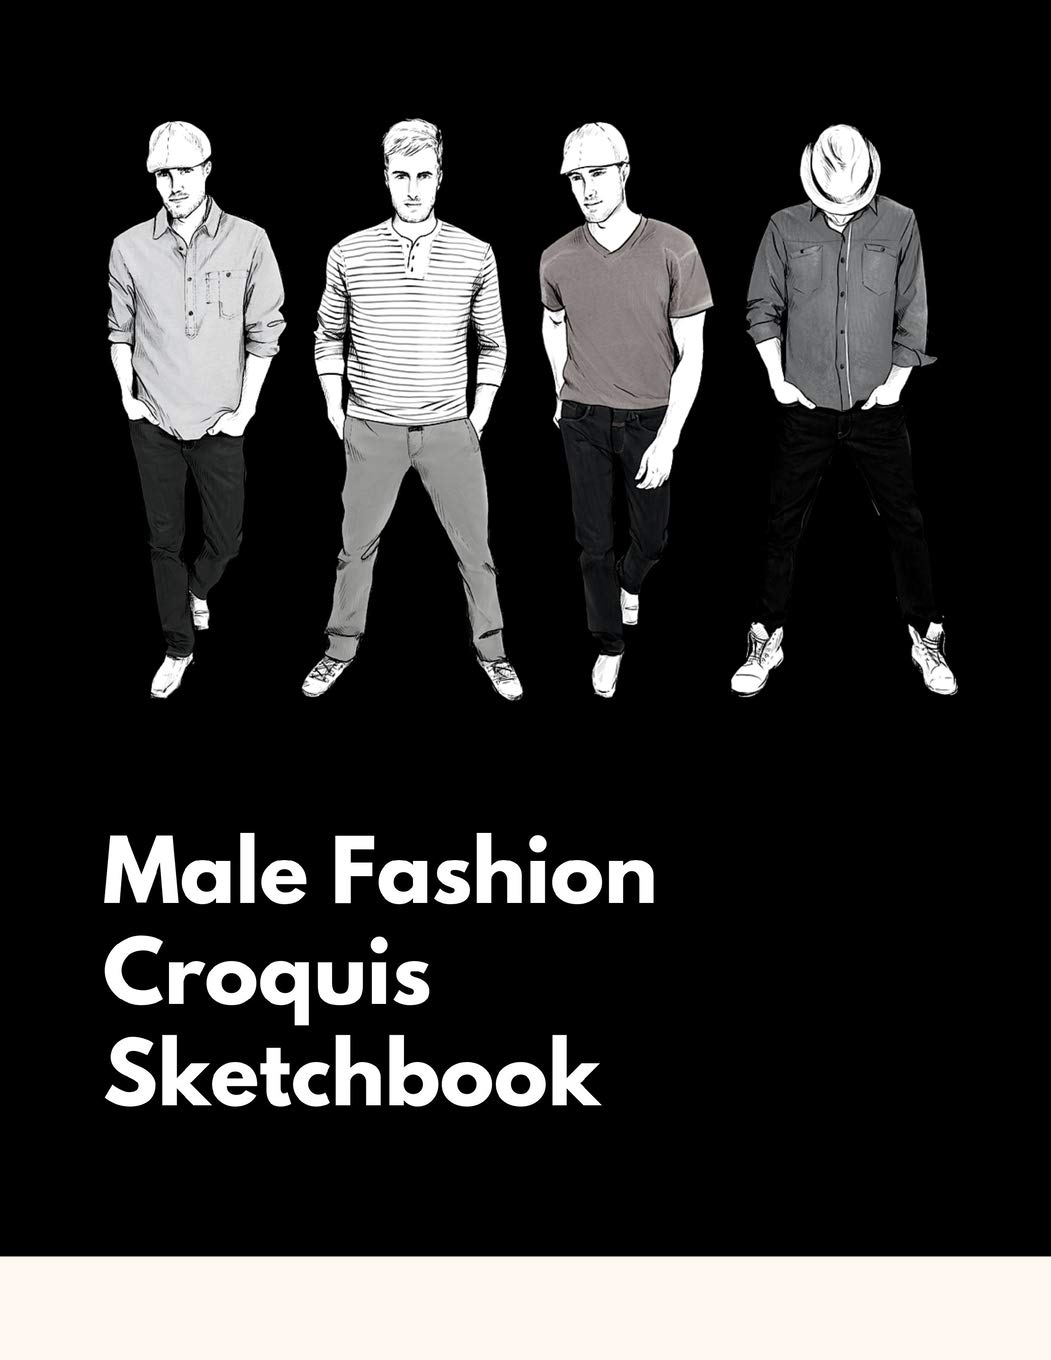 Male Fashion Croquis Sketchbook A Professional Cute Casual Male Figure Body Illustration Templates Sketchpad With 300 Drawn Images For Designers To Men Designs And Create A Stunning Portfolio Femme La Belle